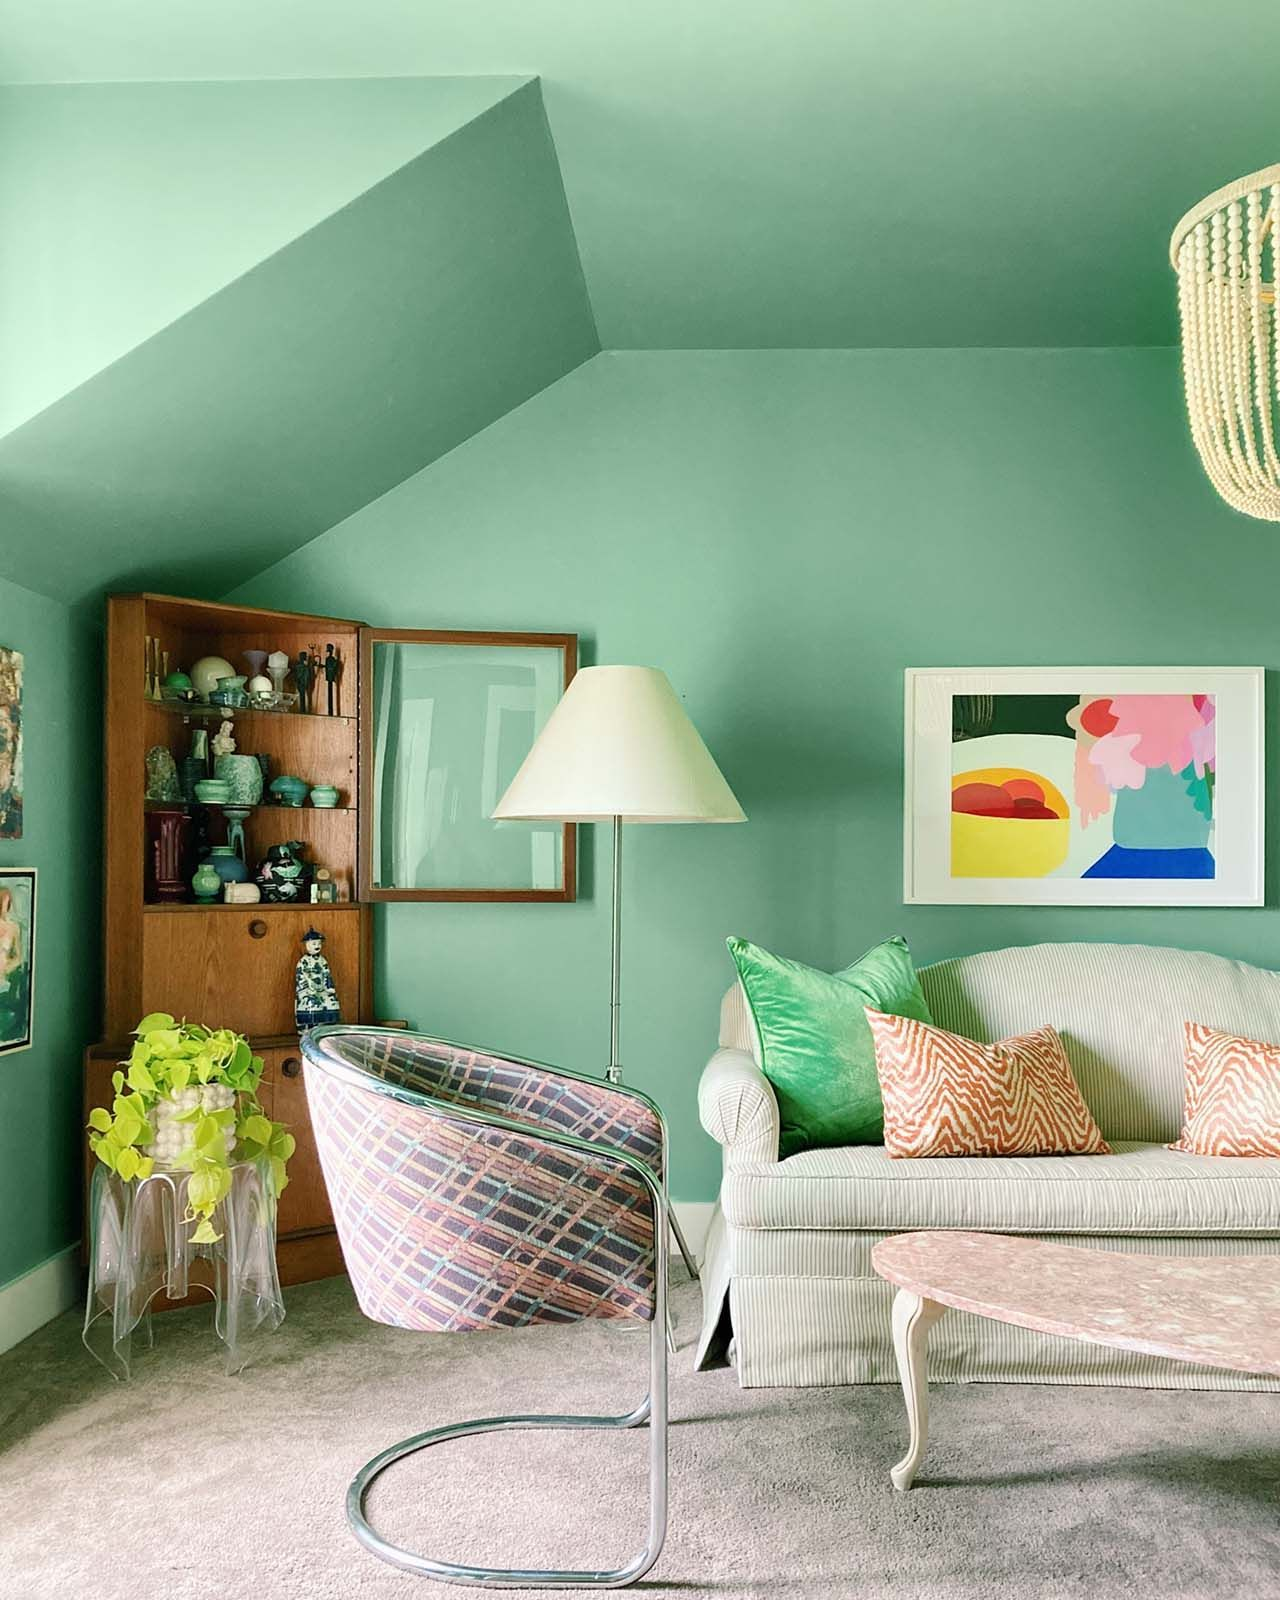 Make It Multifunctional 5 Ideas For A Guest Bedroom To Maximize Your Space Guest Bedroom Room Ideas Bedroom Paint Shades New bedroom green color